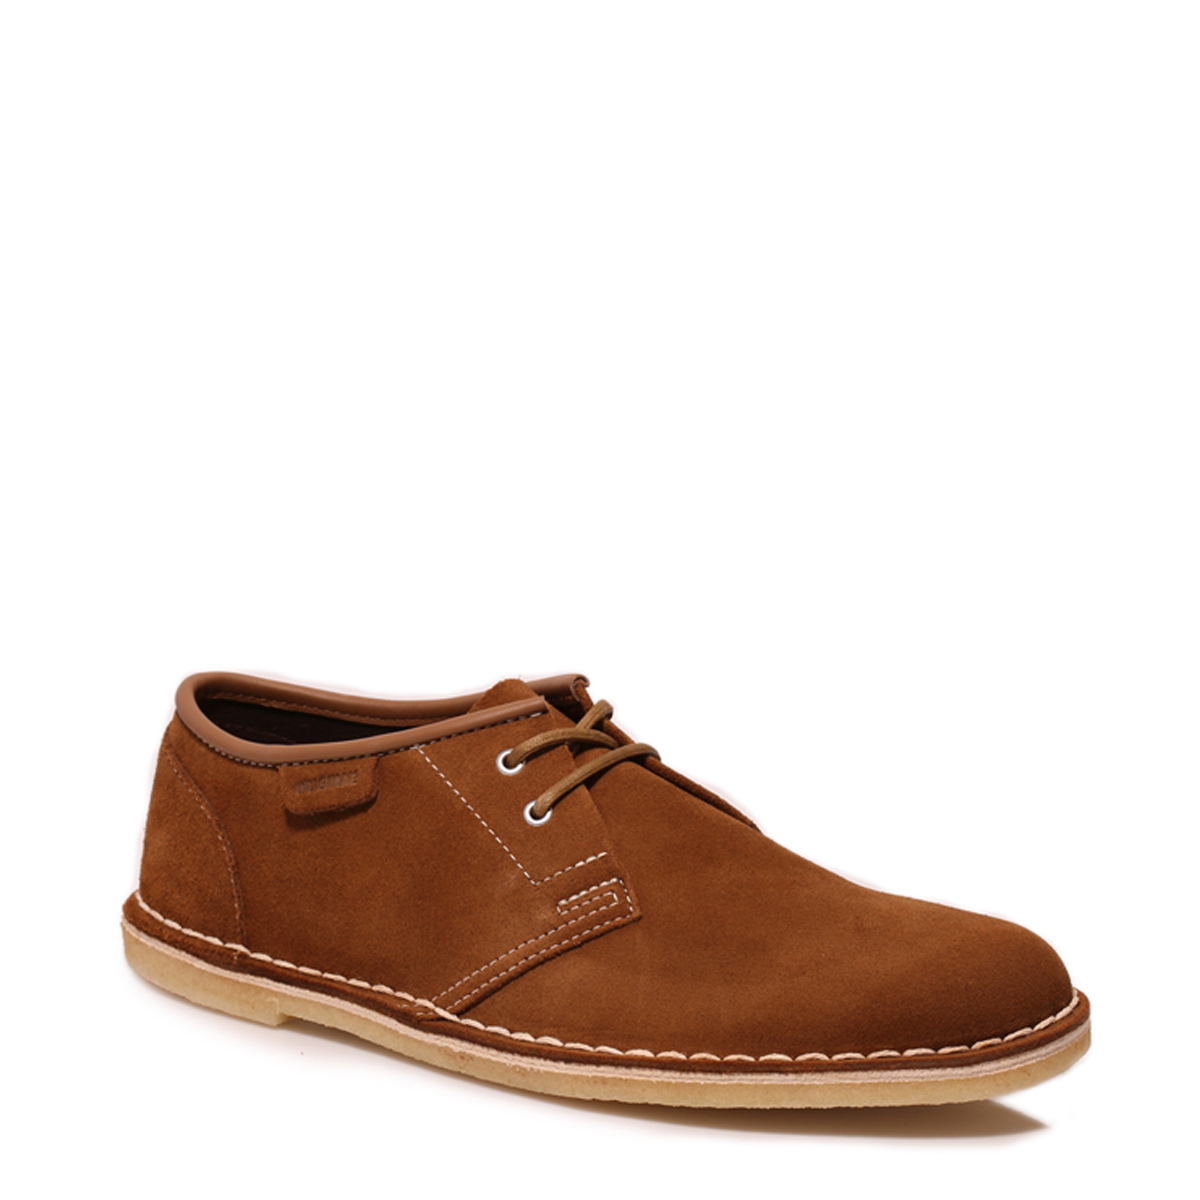 Two Eyelet Suede Shoes